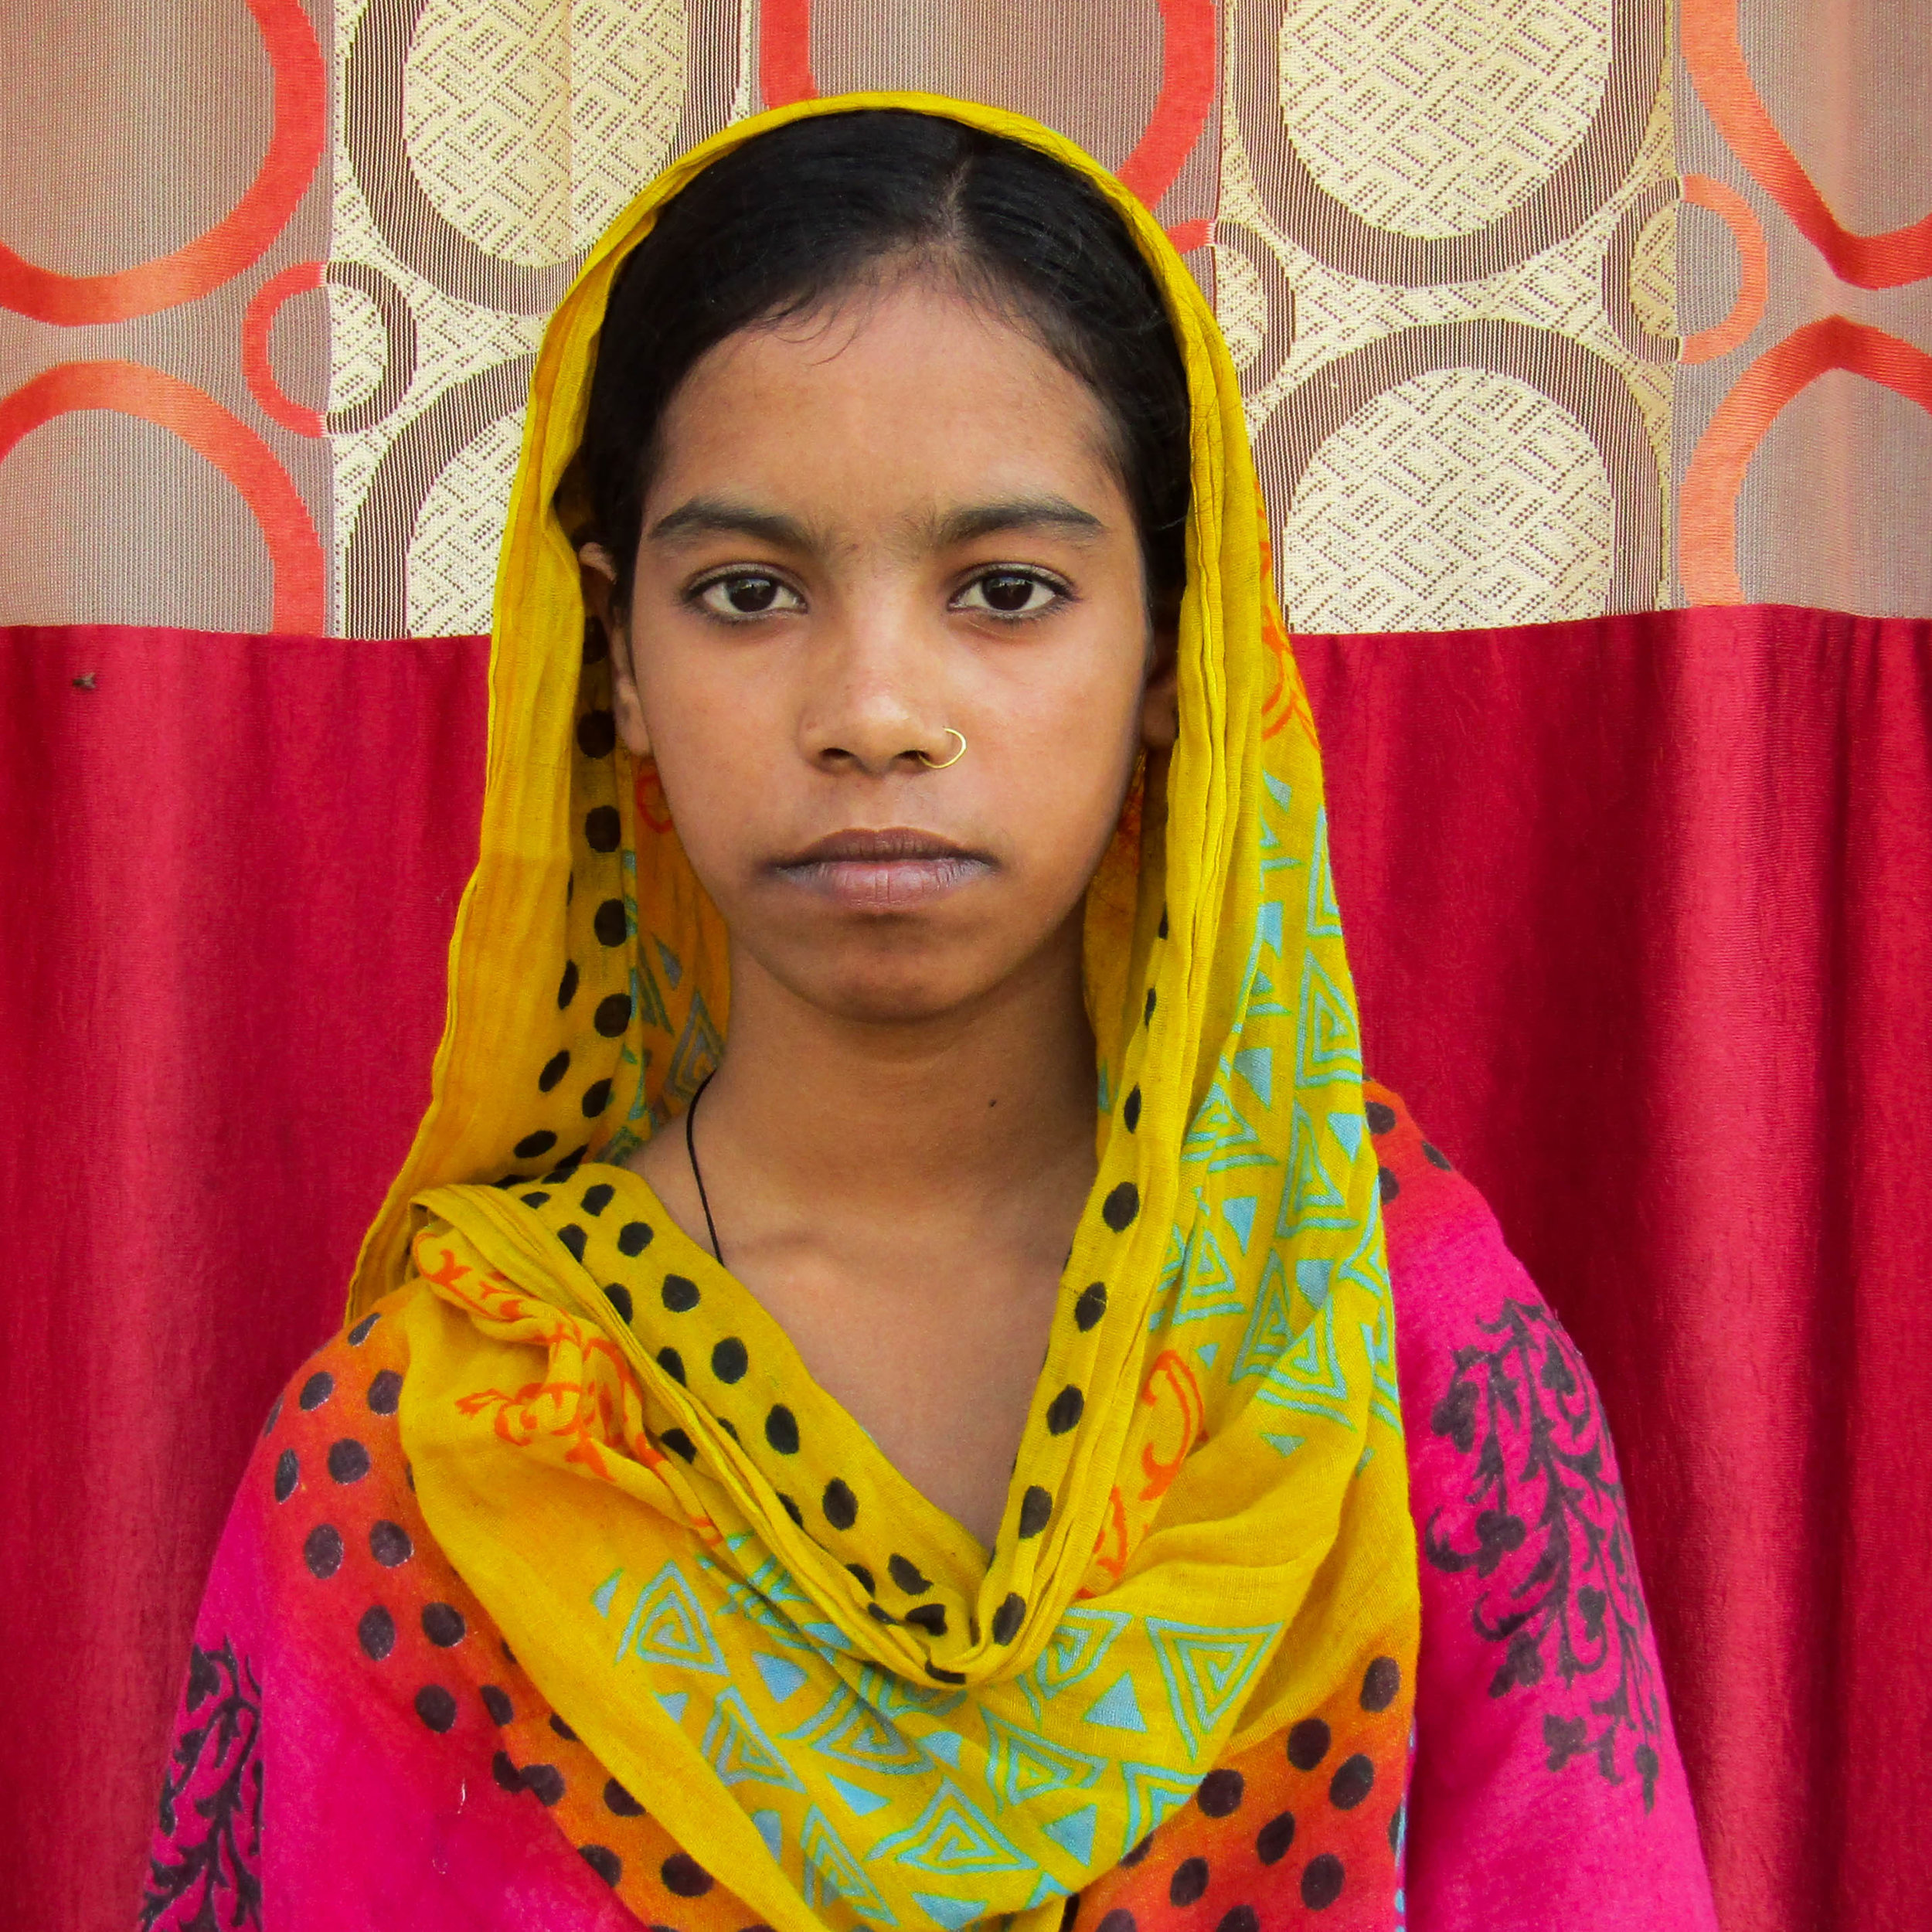 Jia - Sana is 25 years old and at risk of human trafficking. Residing in Bihar, India, she was born into the SC caste, a historically disadvantaged indigenous people group. Married with five children ages 3 to 7, her family's average household income is about $3.00 a day. Sana is illiterate with major barriers to finding work.